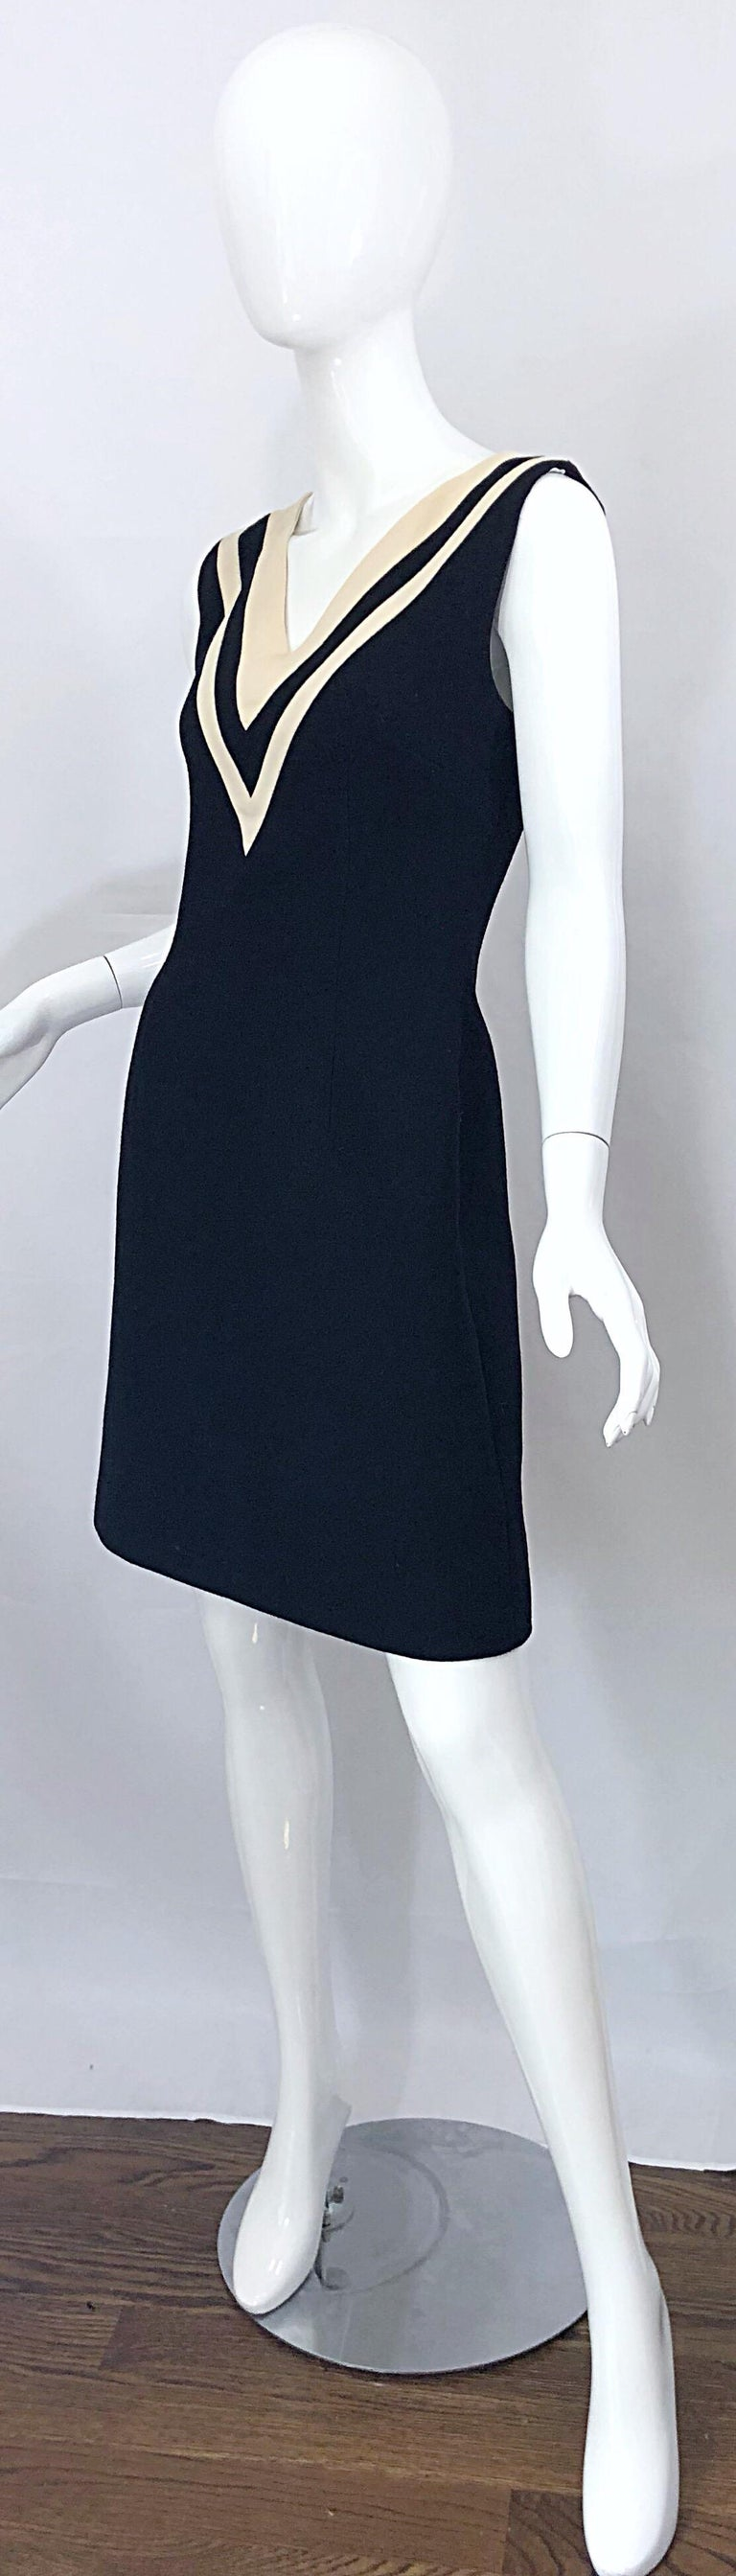 Women's Dolce & Gabbana Size 42 / US 6 Black and Ivory 1990s Does 1960s Wool Shift Dress For Sale